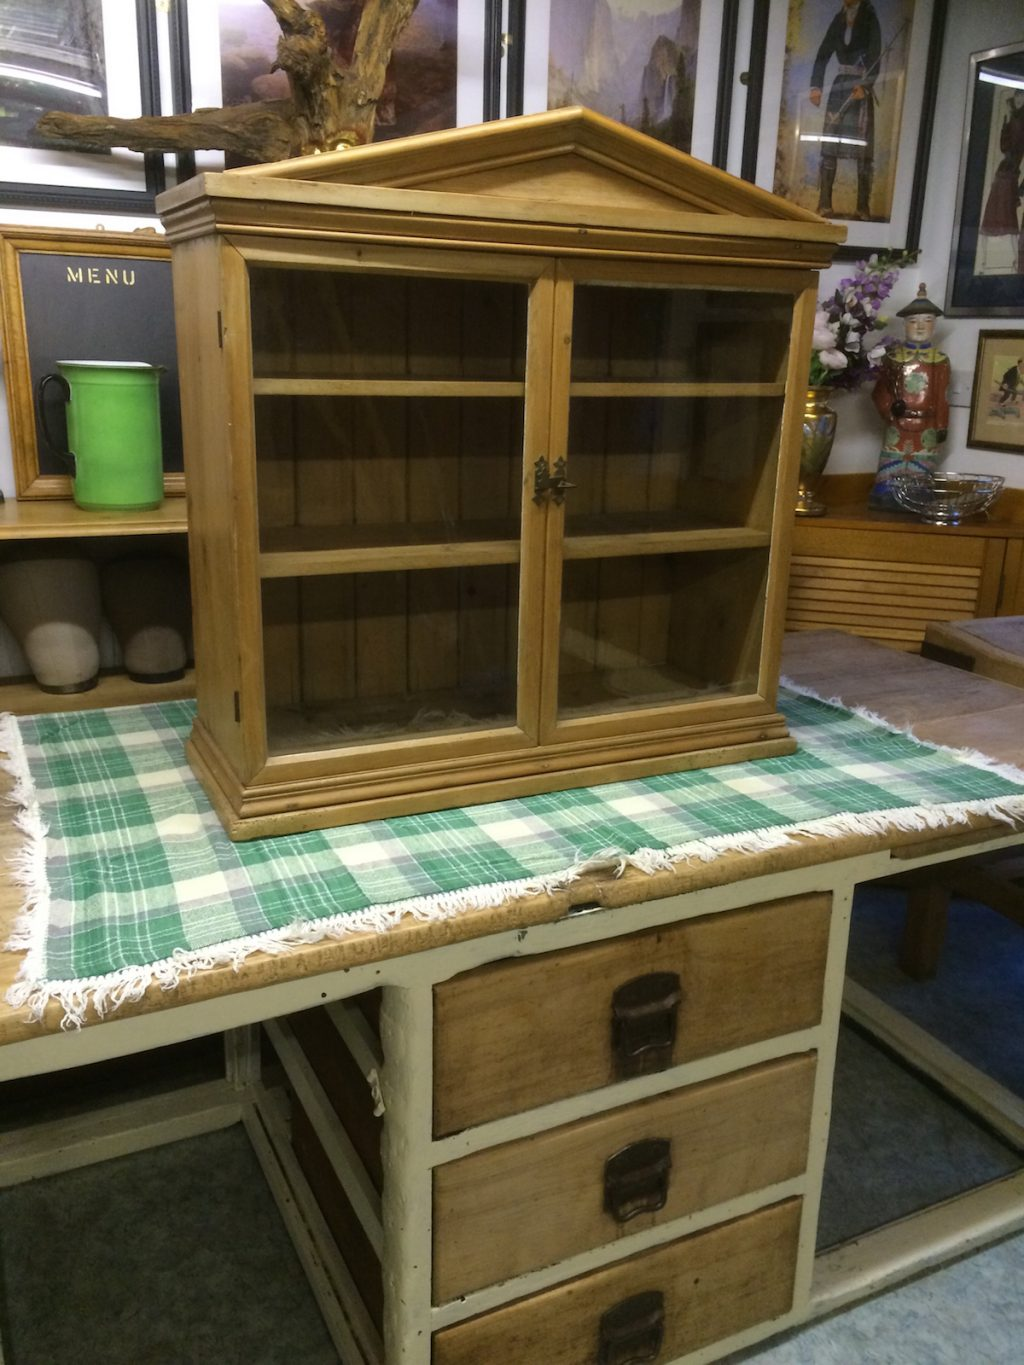 Old glazed pine shop countertop display unit